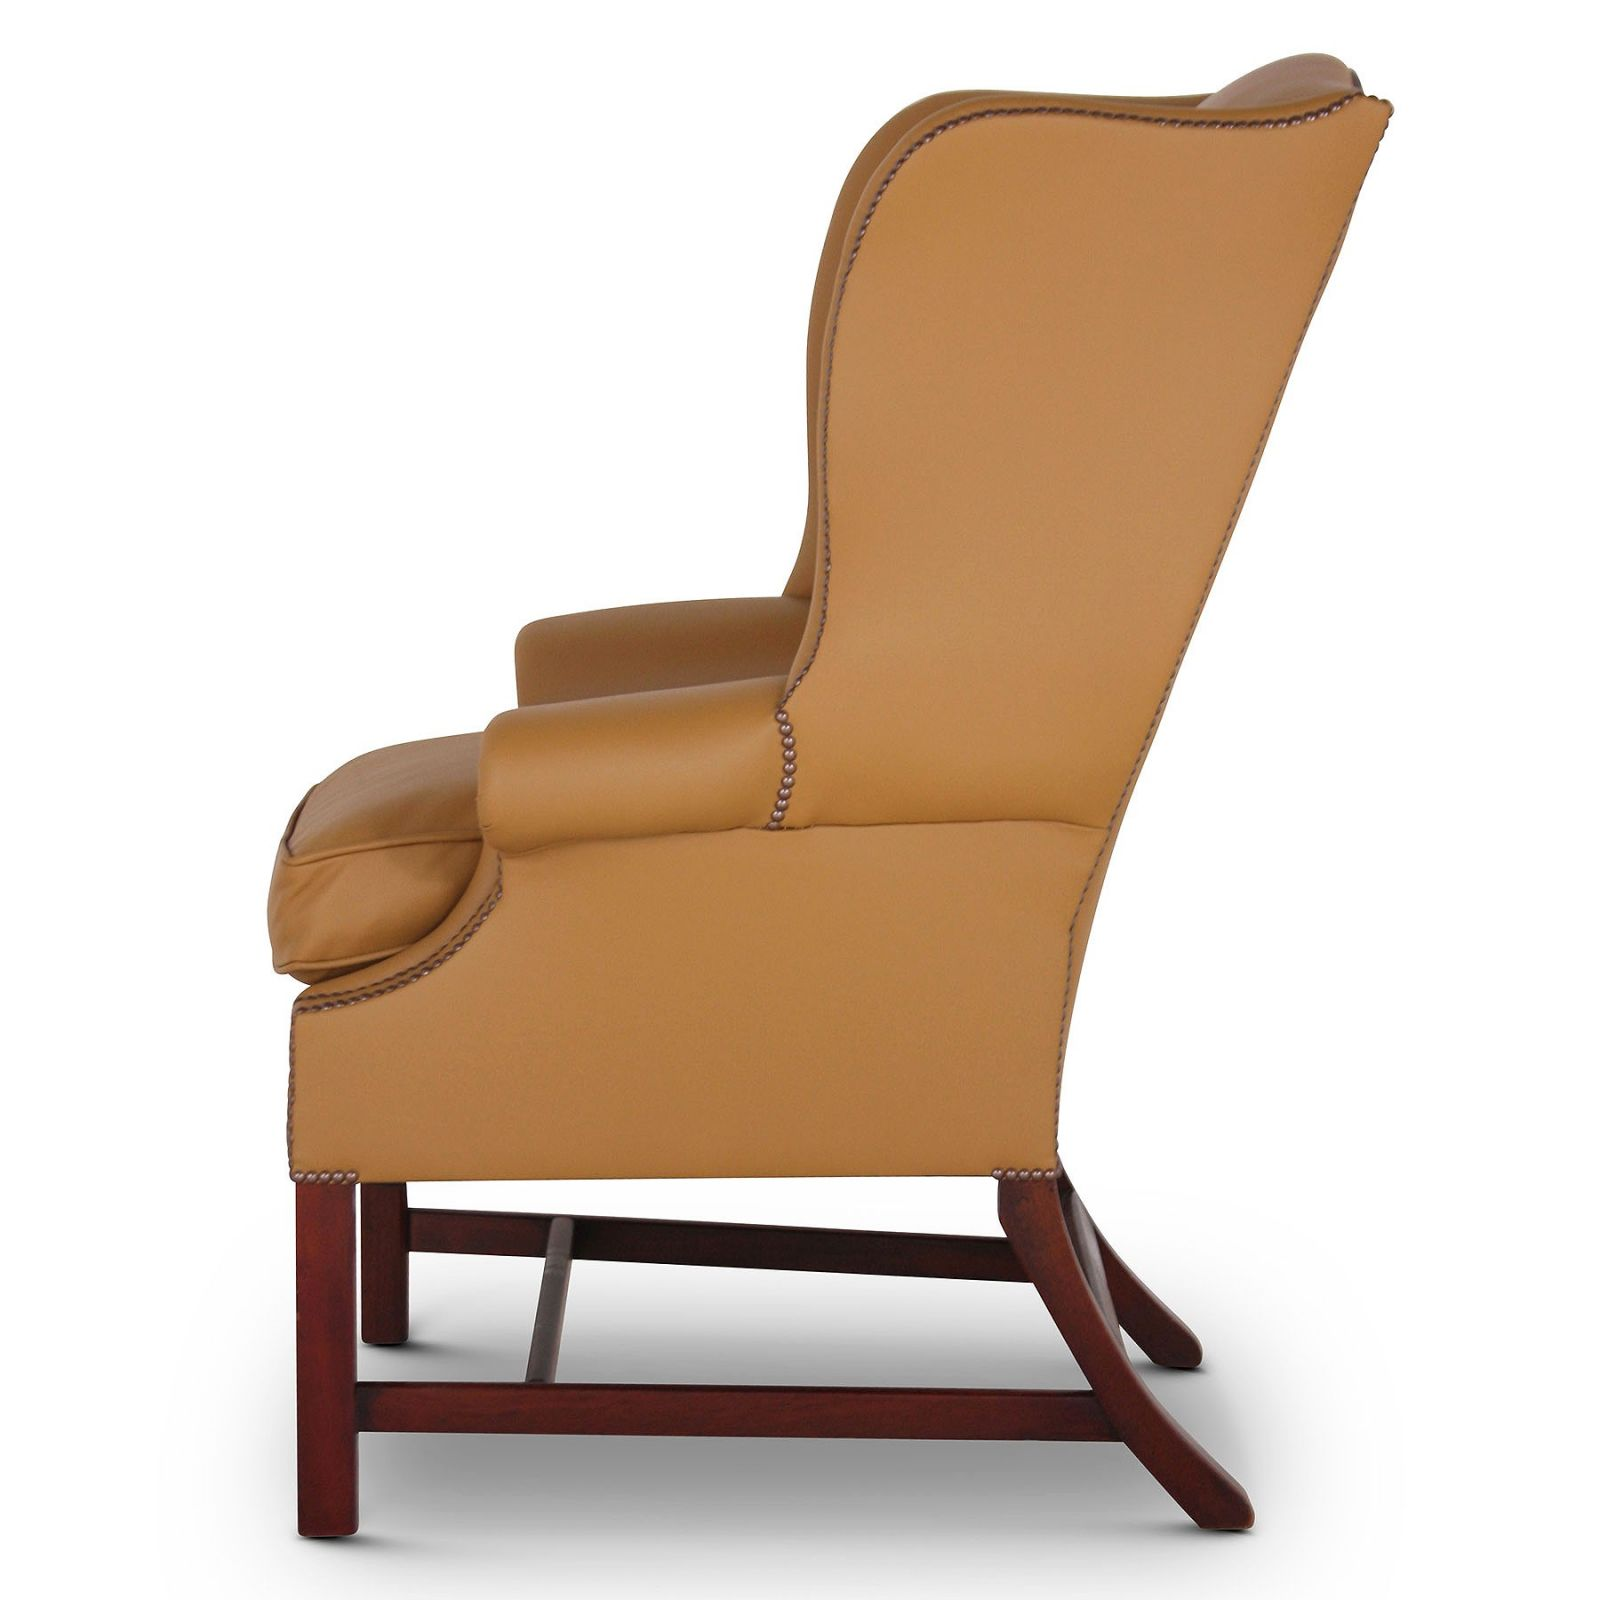 Georgian wing chair in ochre leather